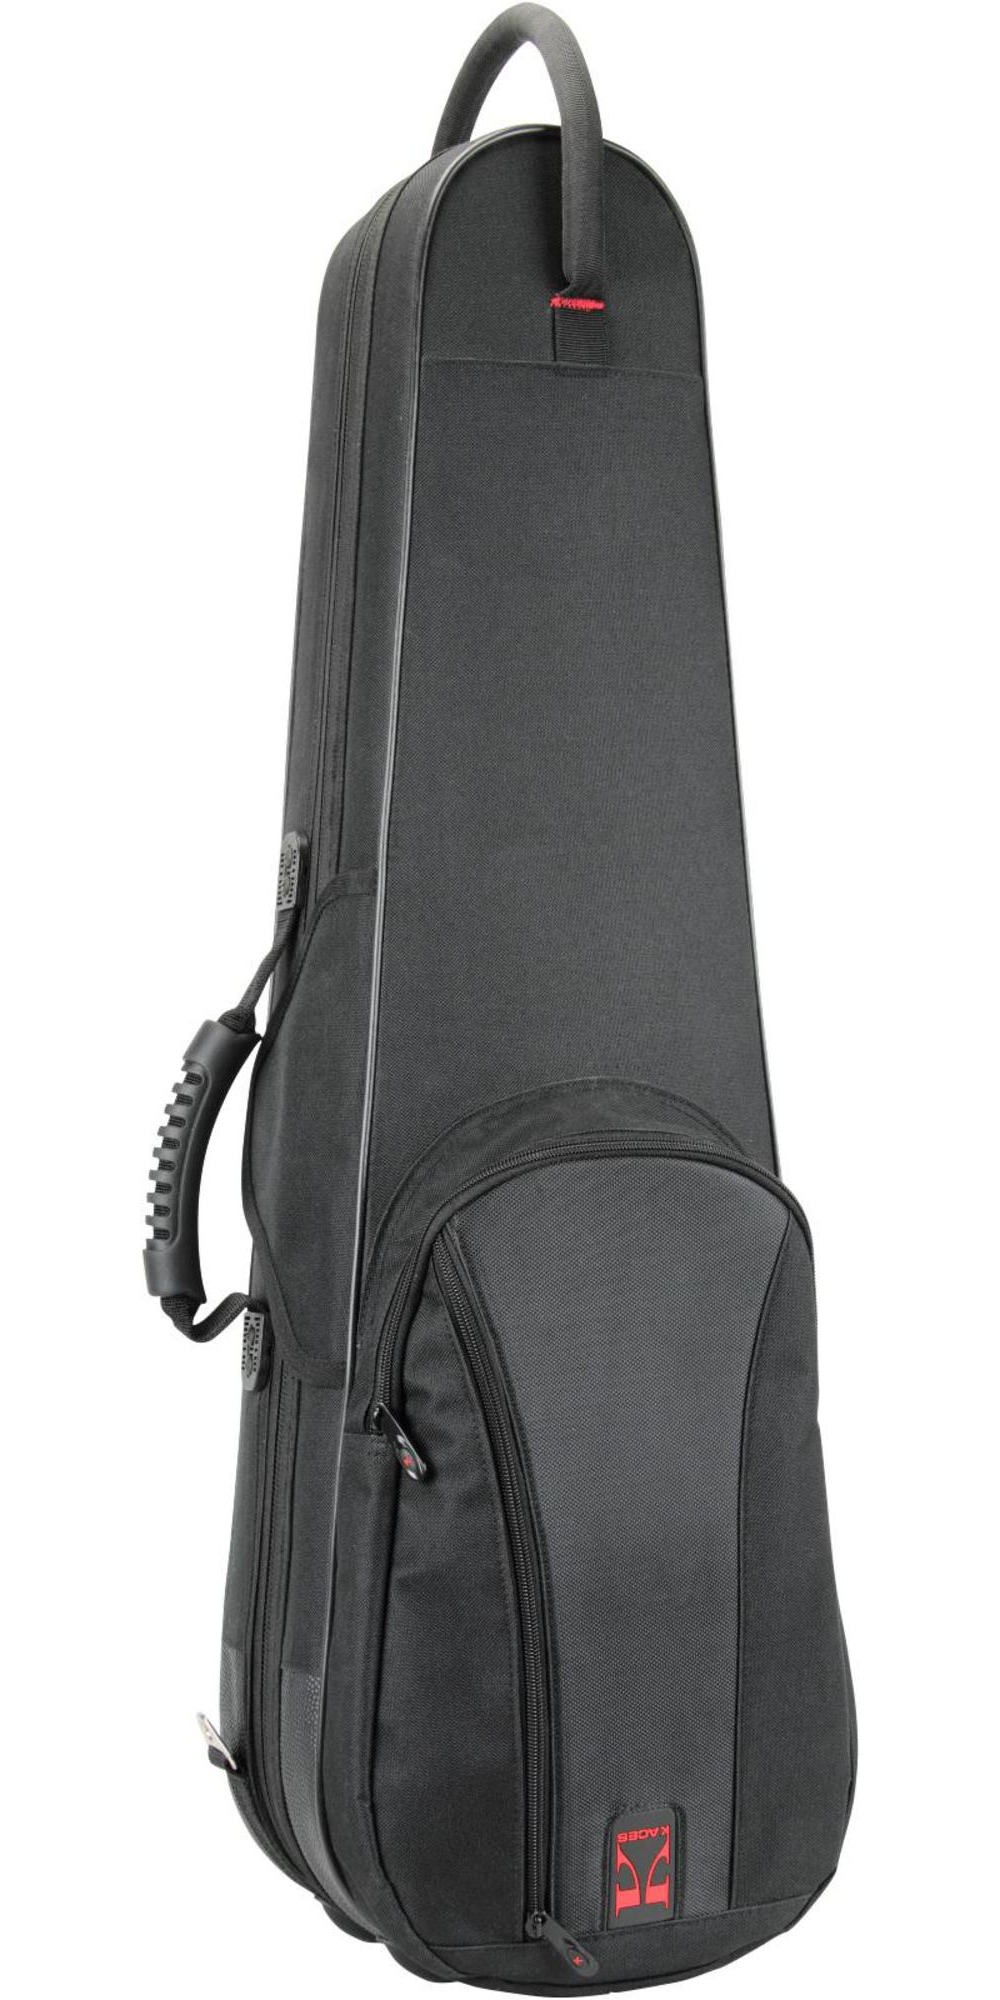 Kaces Deluxe Violin Case 4 4 Size by Kaces